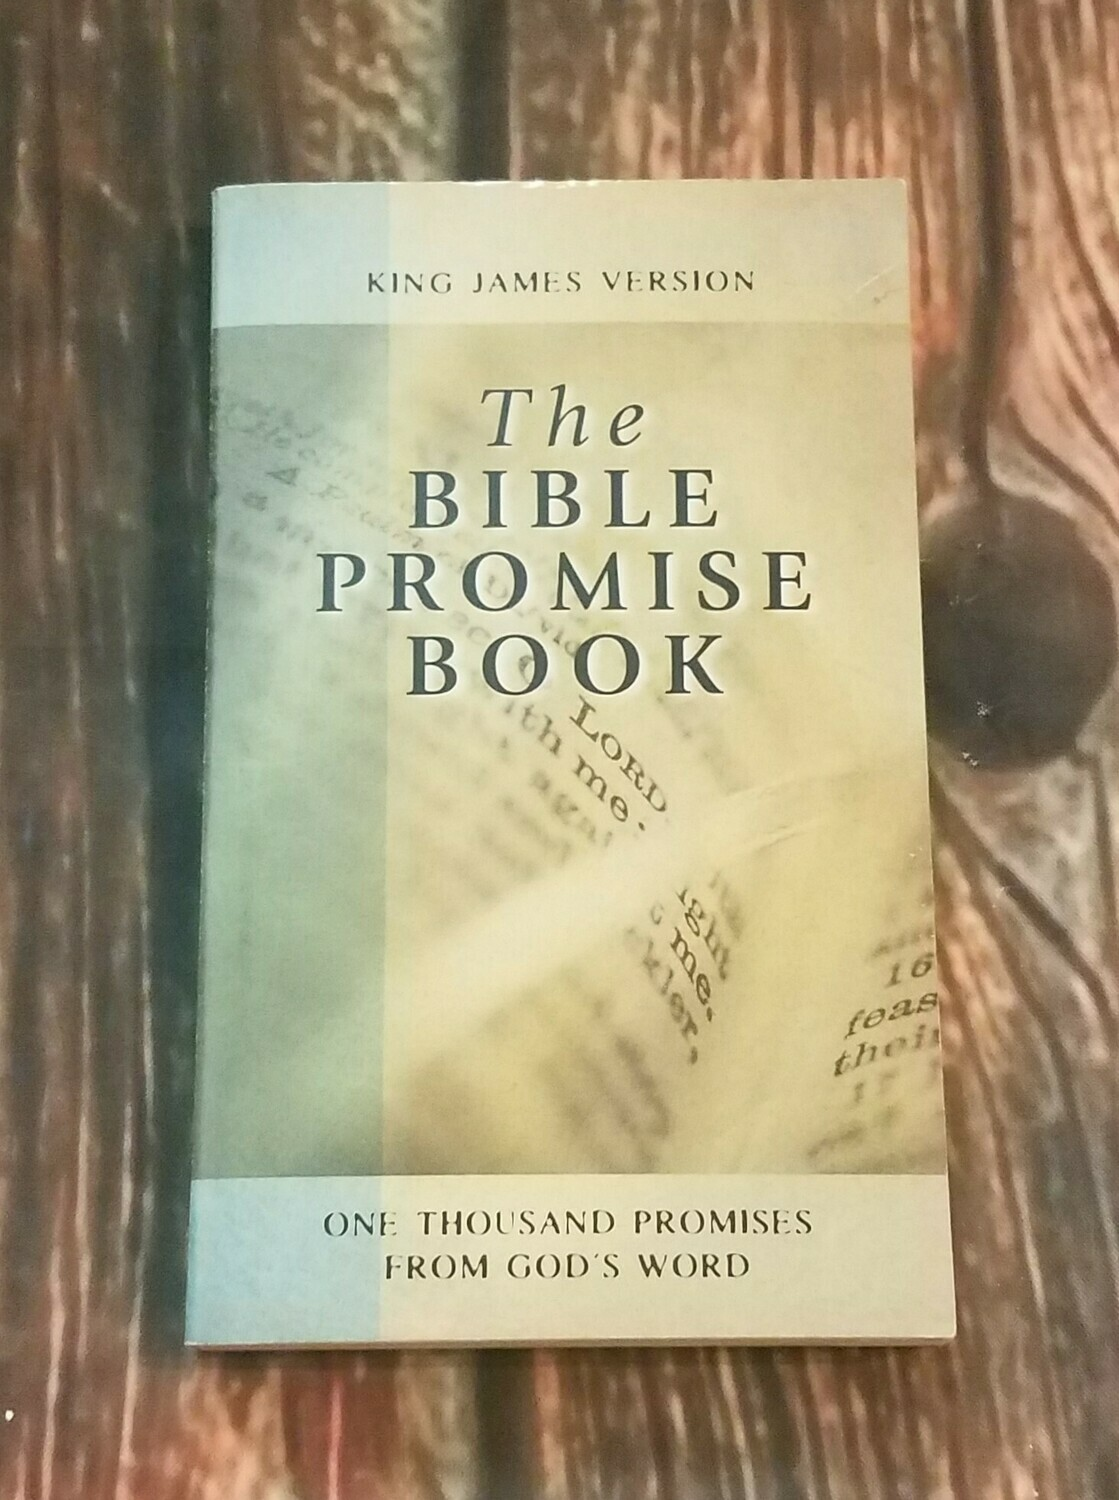 The Bible Promise Book: King James Version by Barbour Publishing